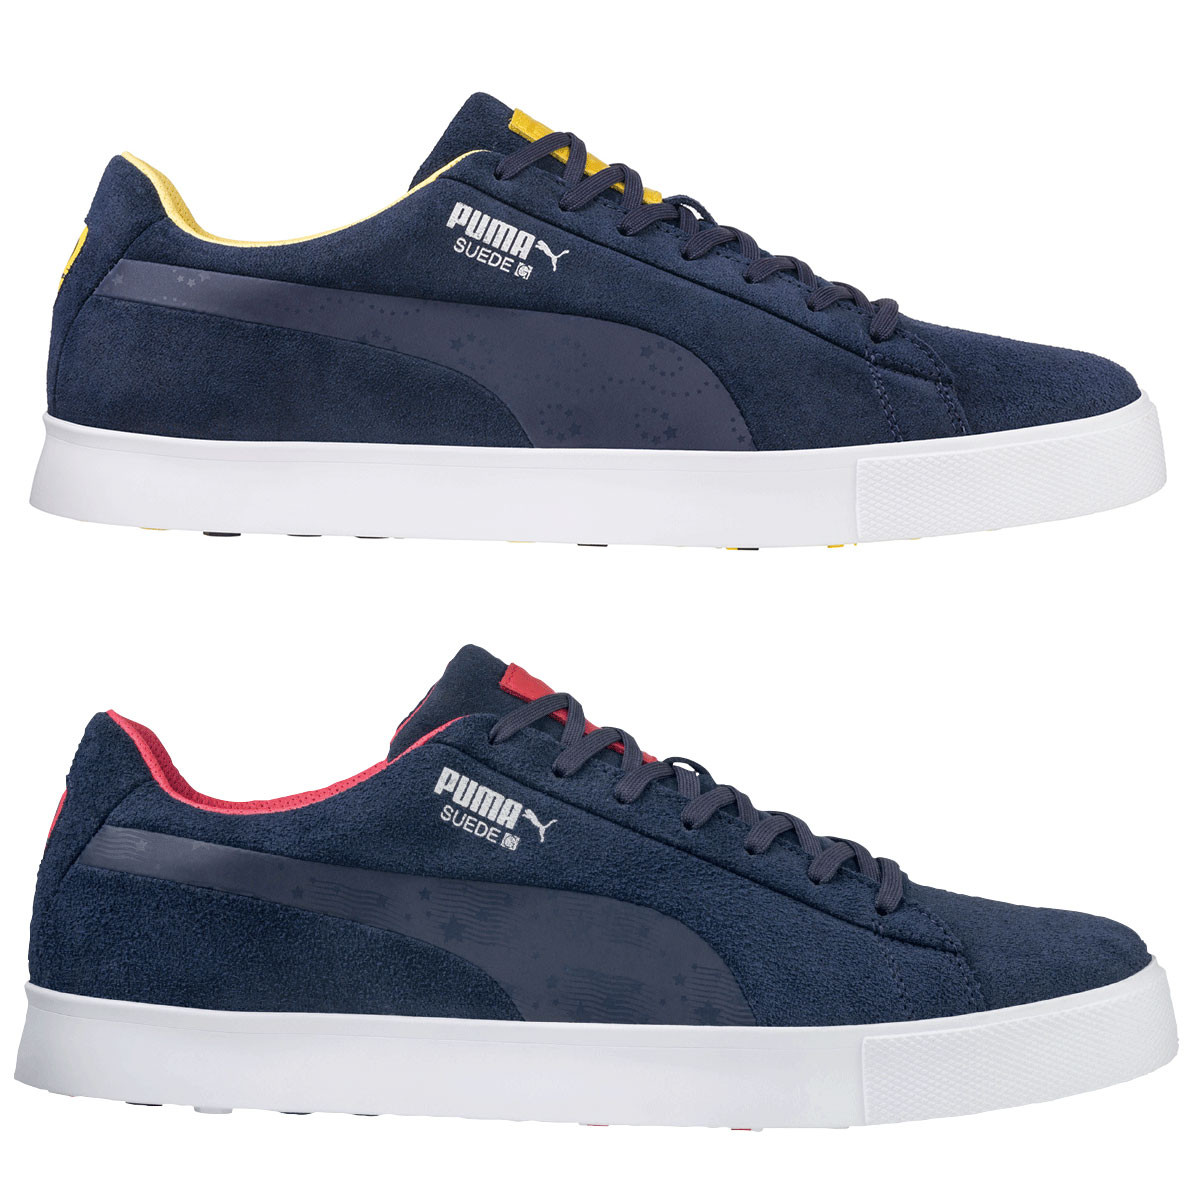 4bace8d27179 Puma Mens Suede G Team Spikeless Waterproof Golf Shoes